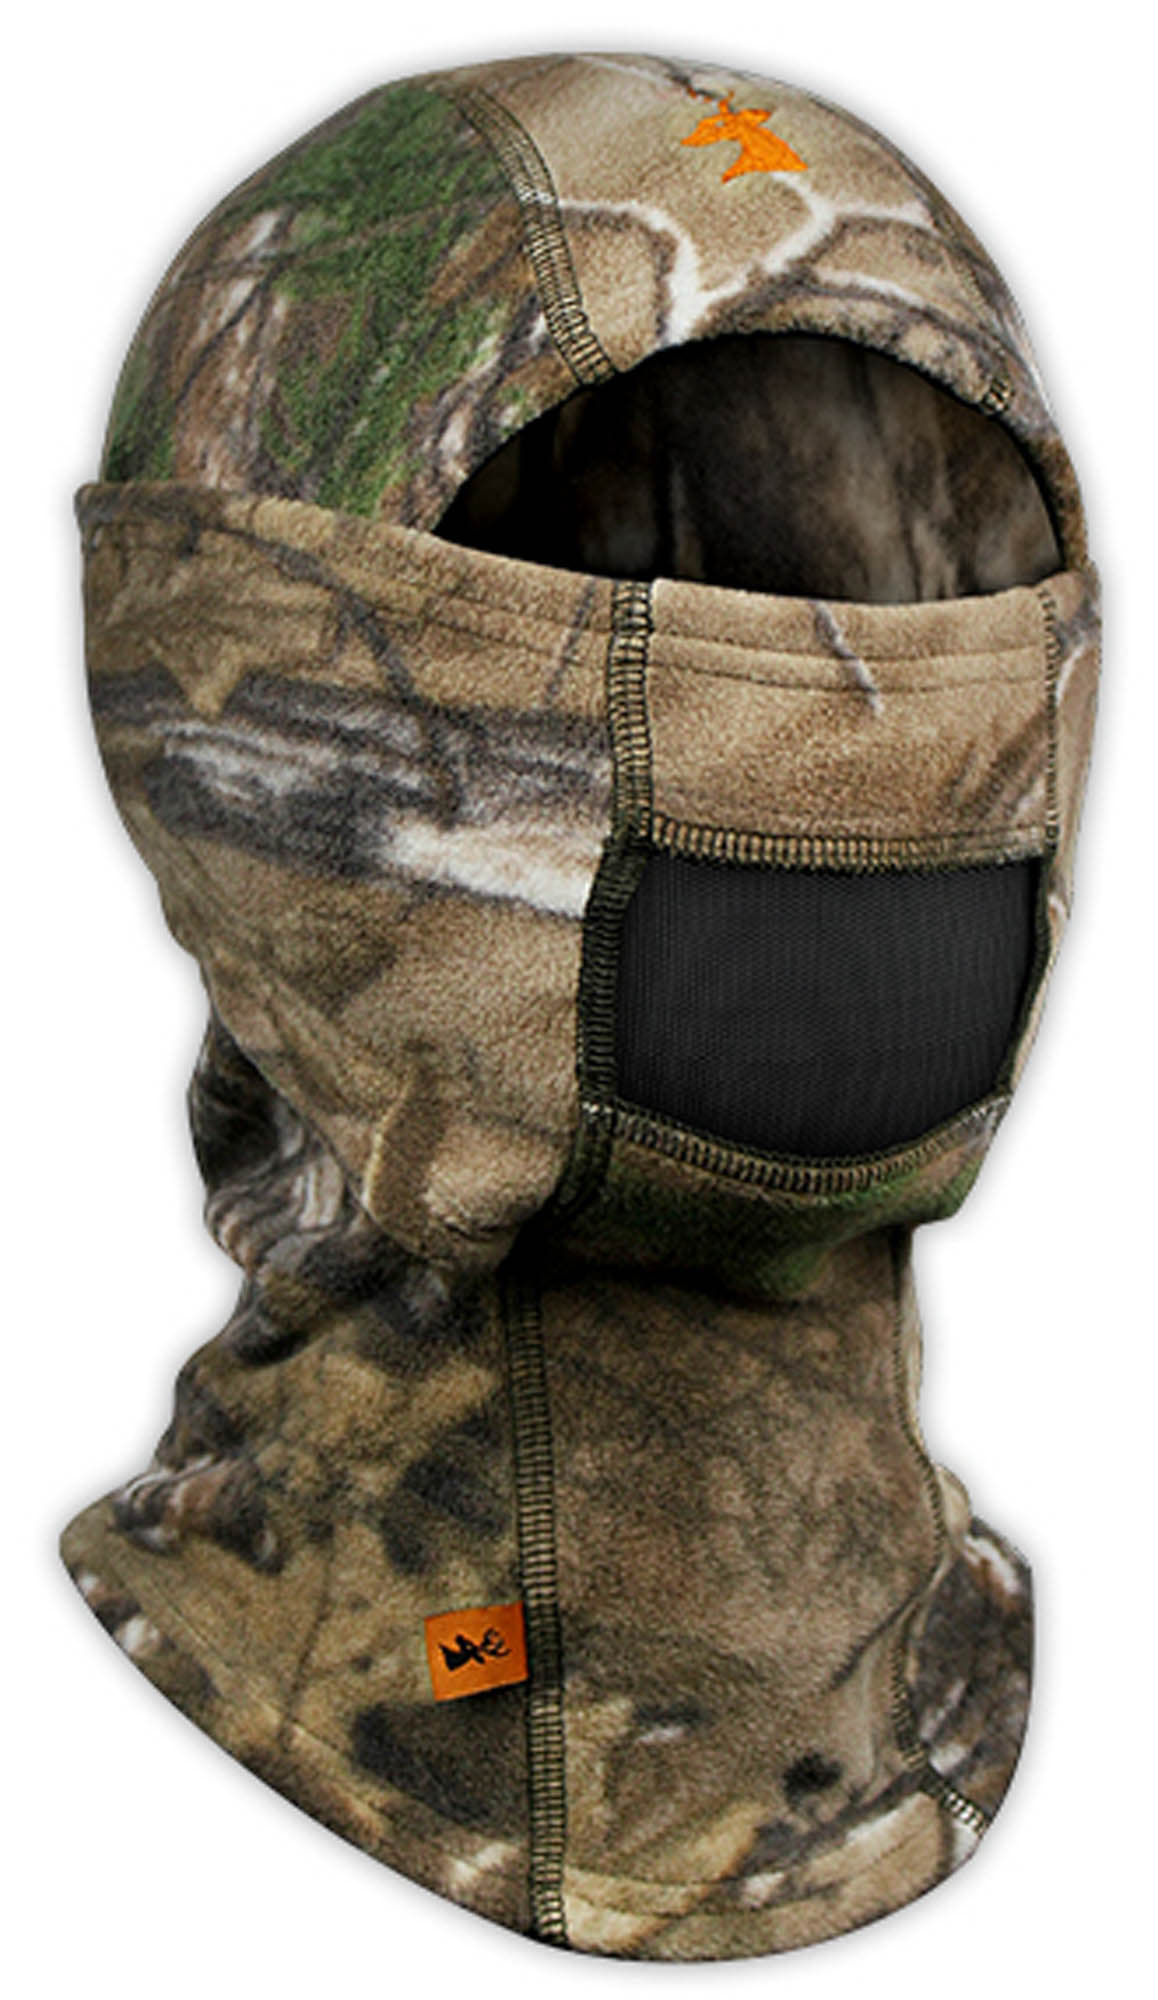 A50611-Cagoule polaire multi-usage camo - Spika - A50611